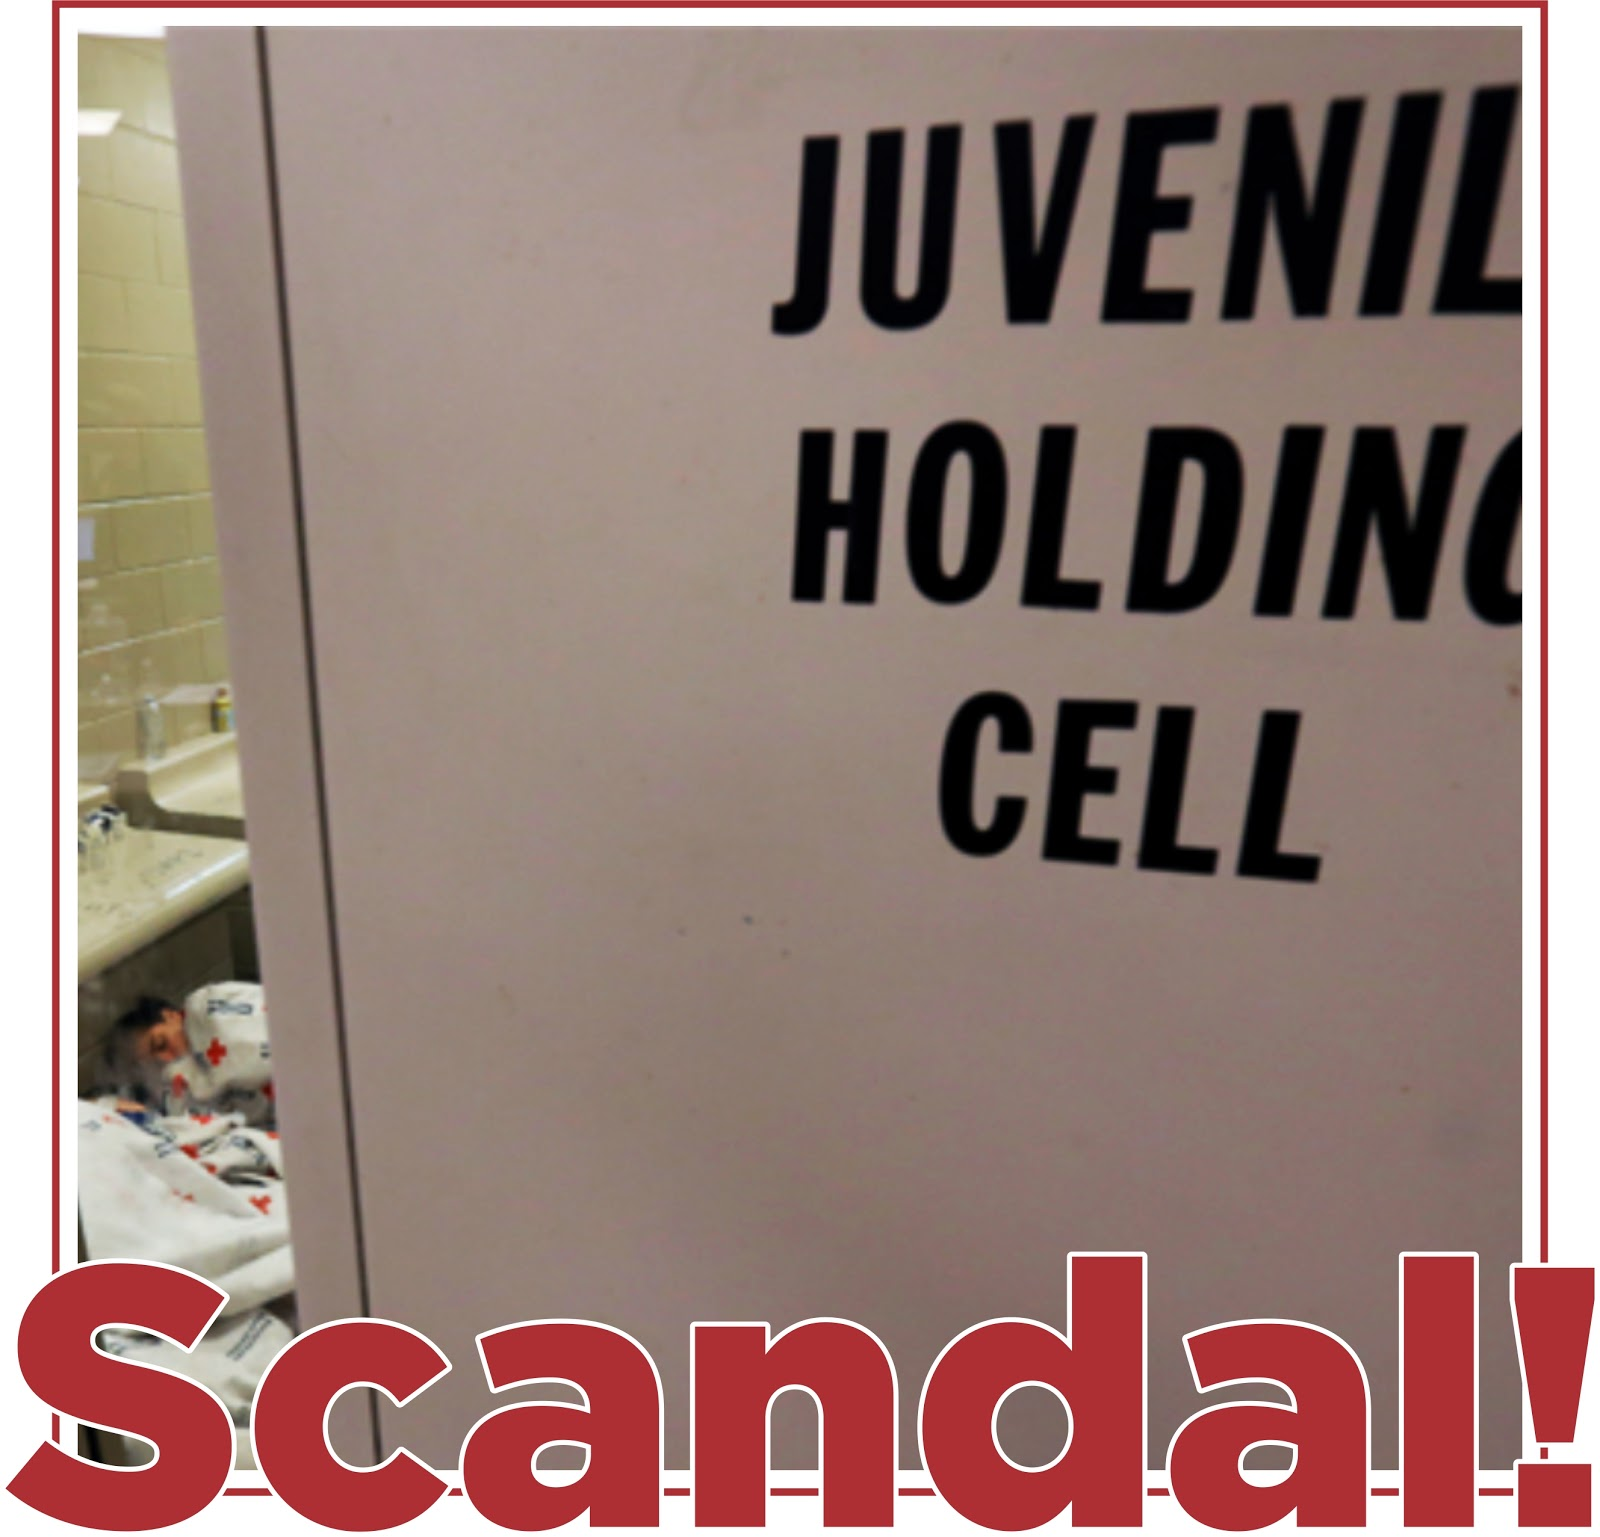 A word of tree, a whisper of stone: Scandal!